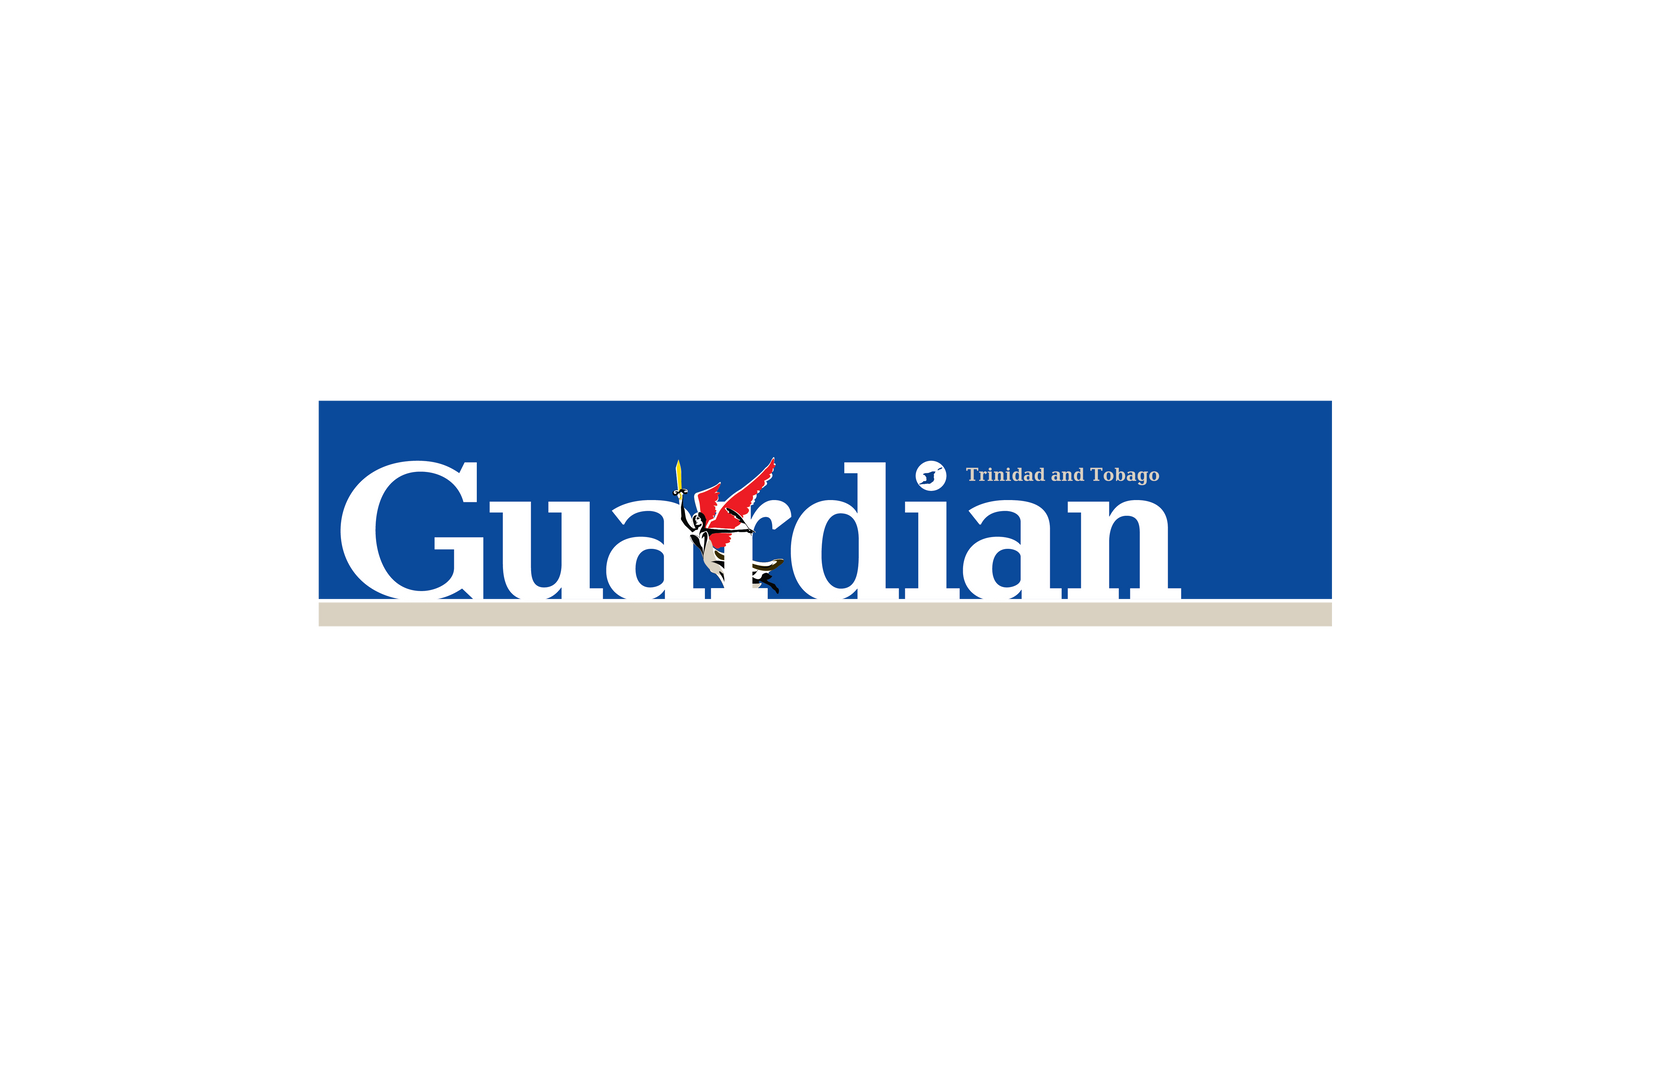 Guardian Official Logo-01.png